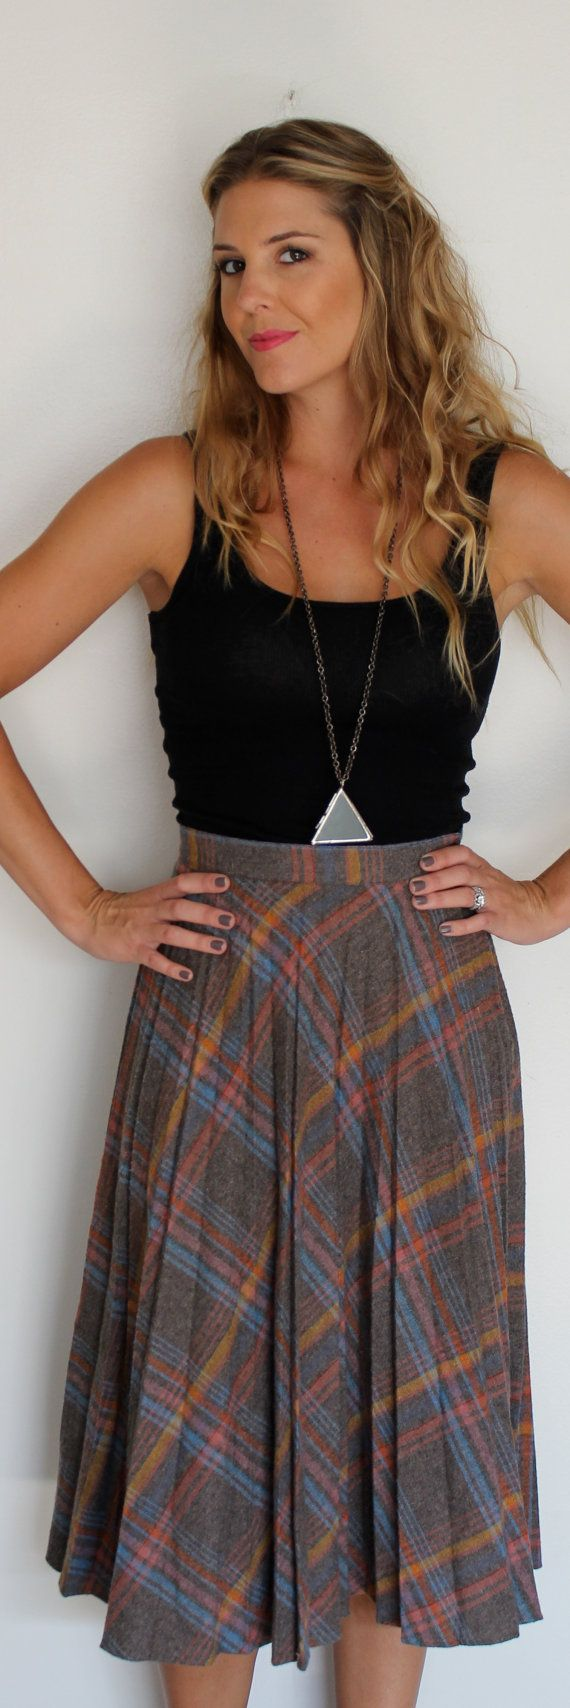 1970's Plaid Pleated Skirt by LeFoss on Etsy